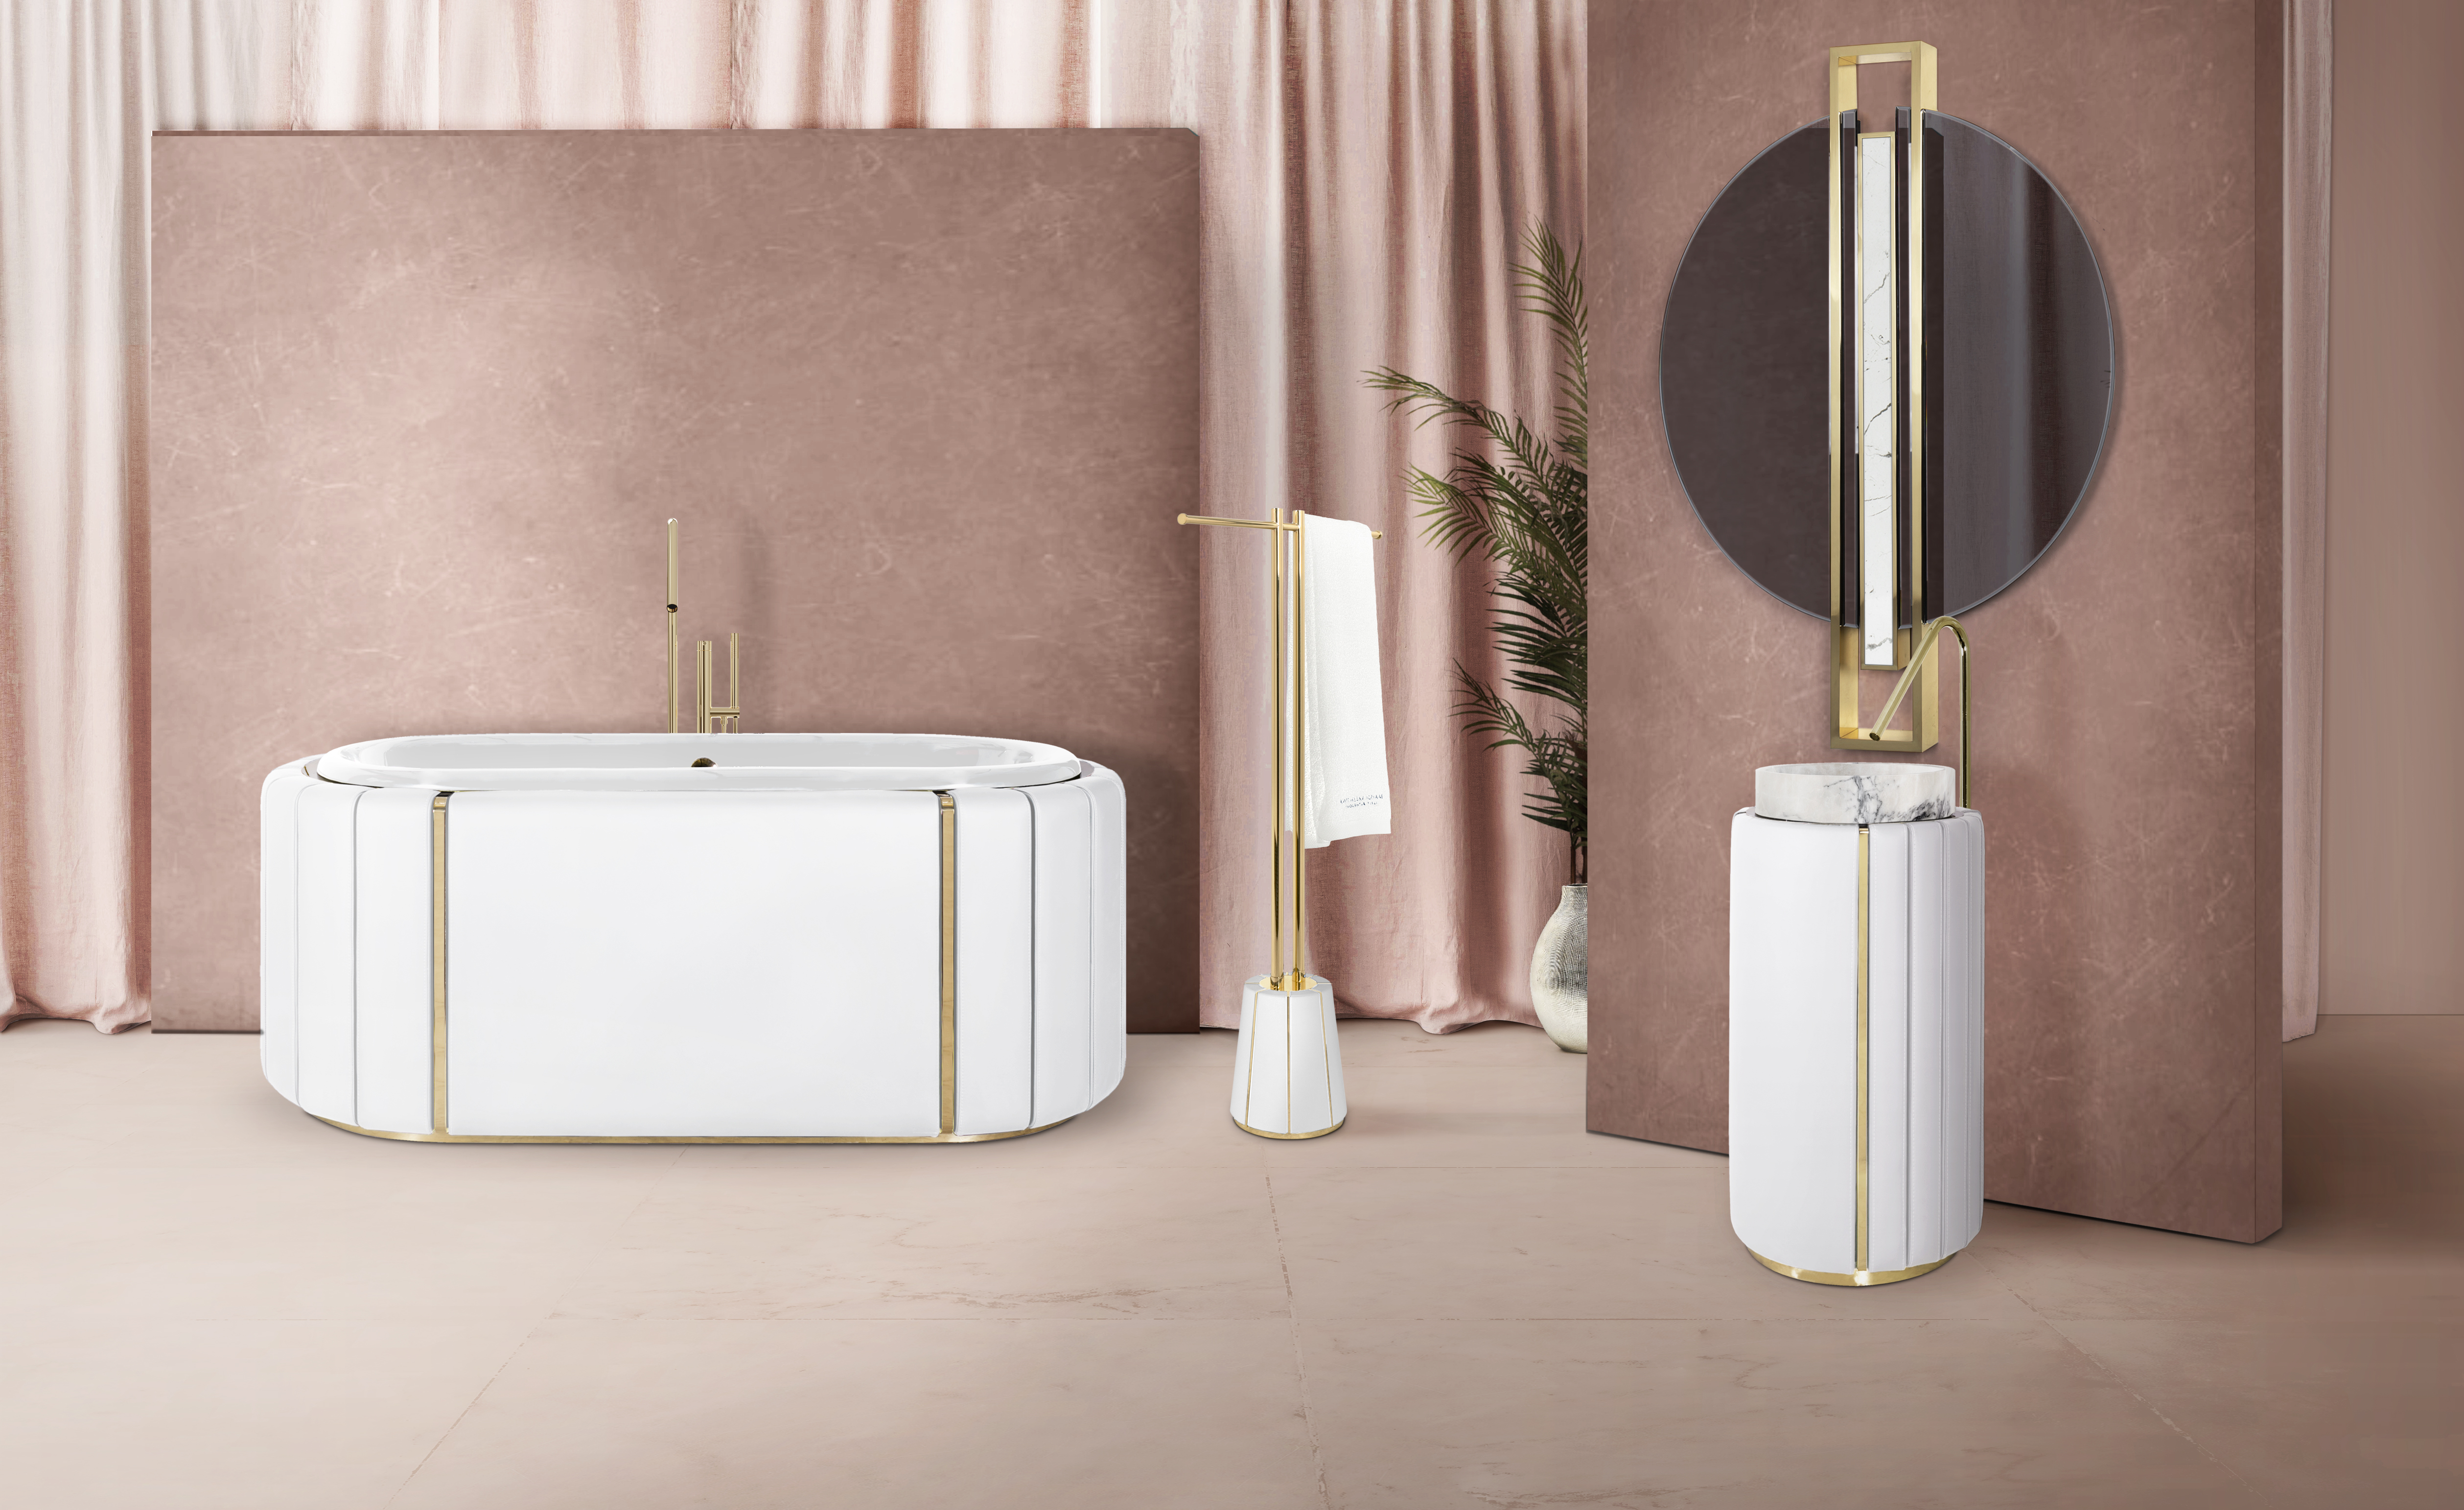 Latest Bath Collection From Maison Valentina Combines Leather Gold Residential Products Online